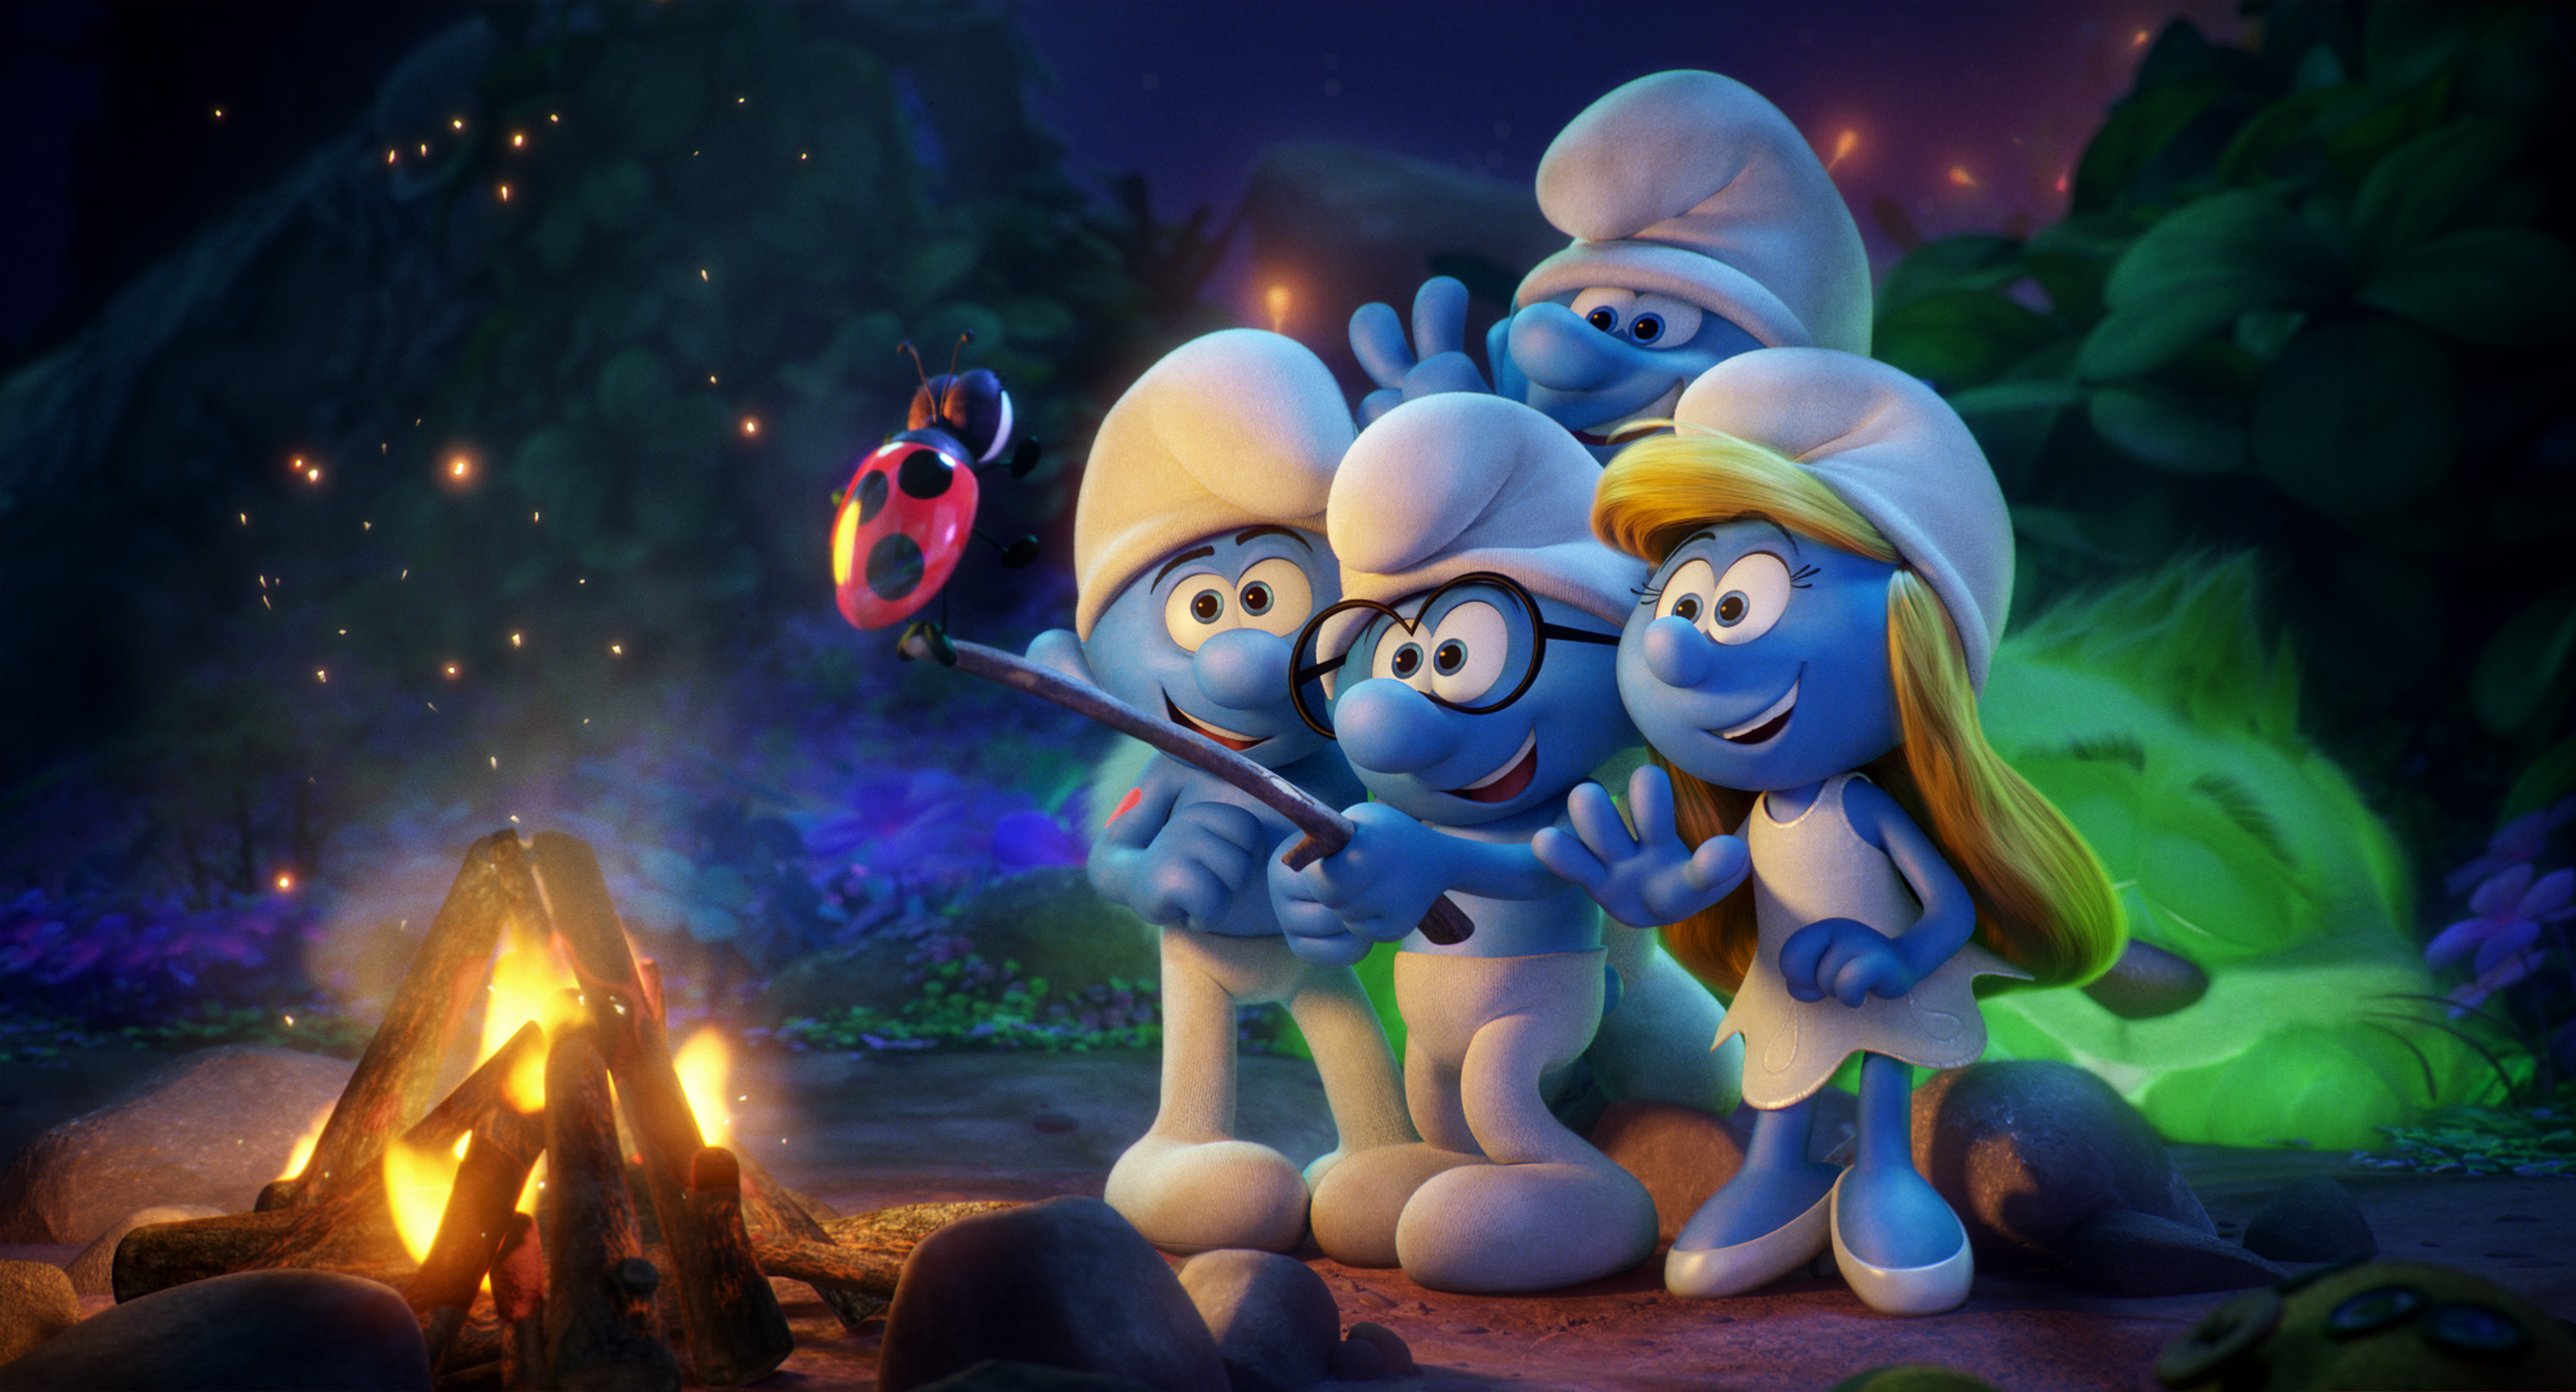 Smurfs 3 smurfs the lost village opens friday april 7th - Hefty smurf the lost village ...